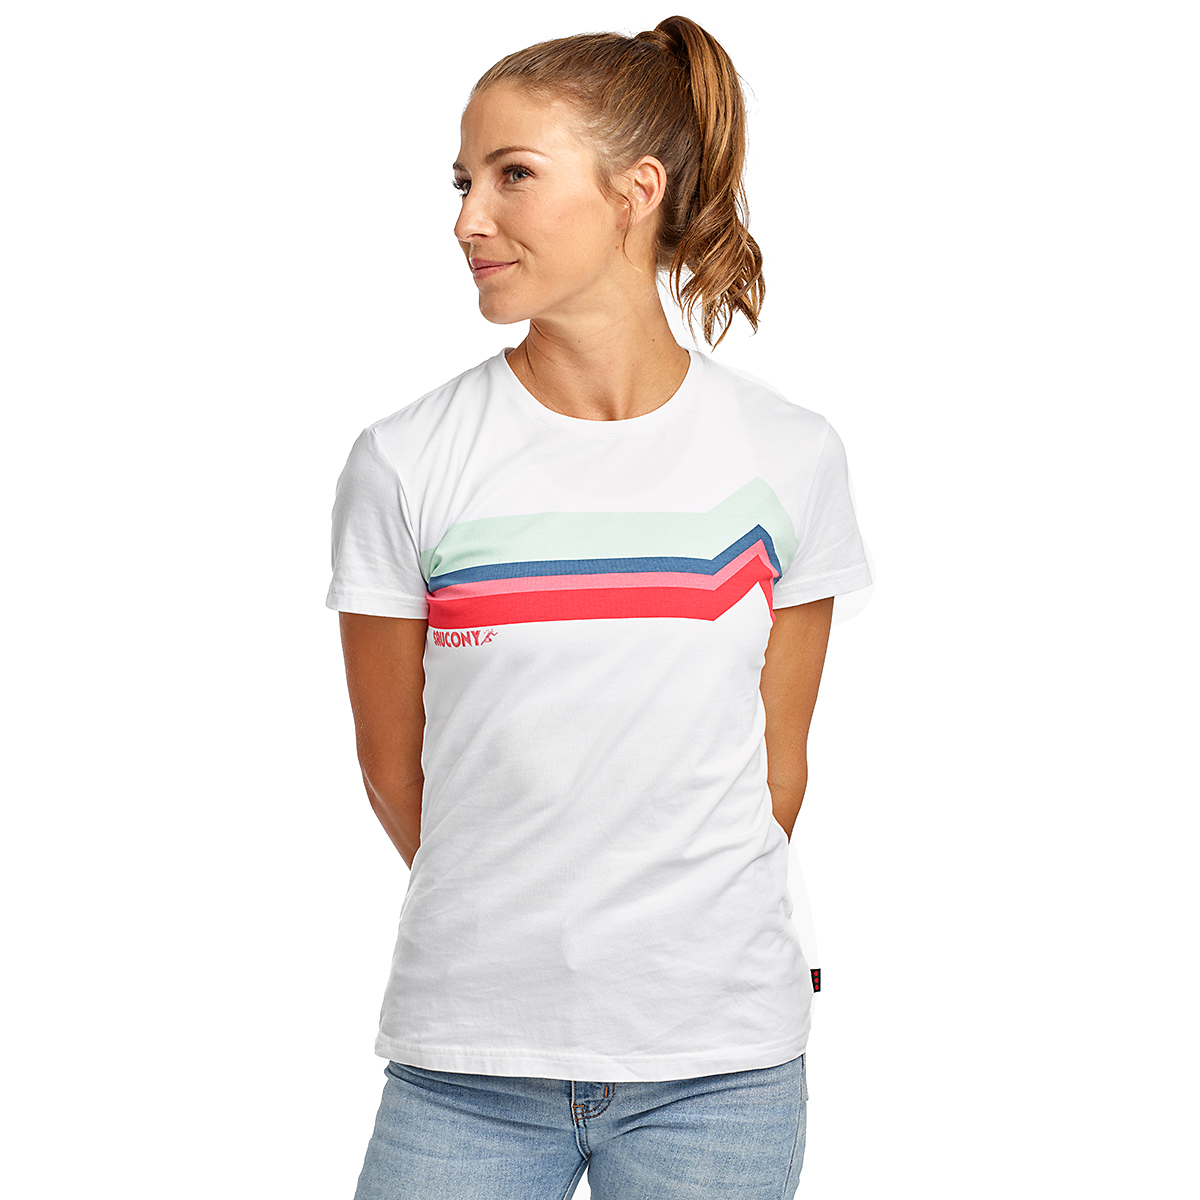 Women's Saucony Rested Short Sleeve - Color: White - Size: XXS, White, large, image 1